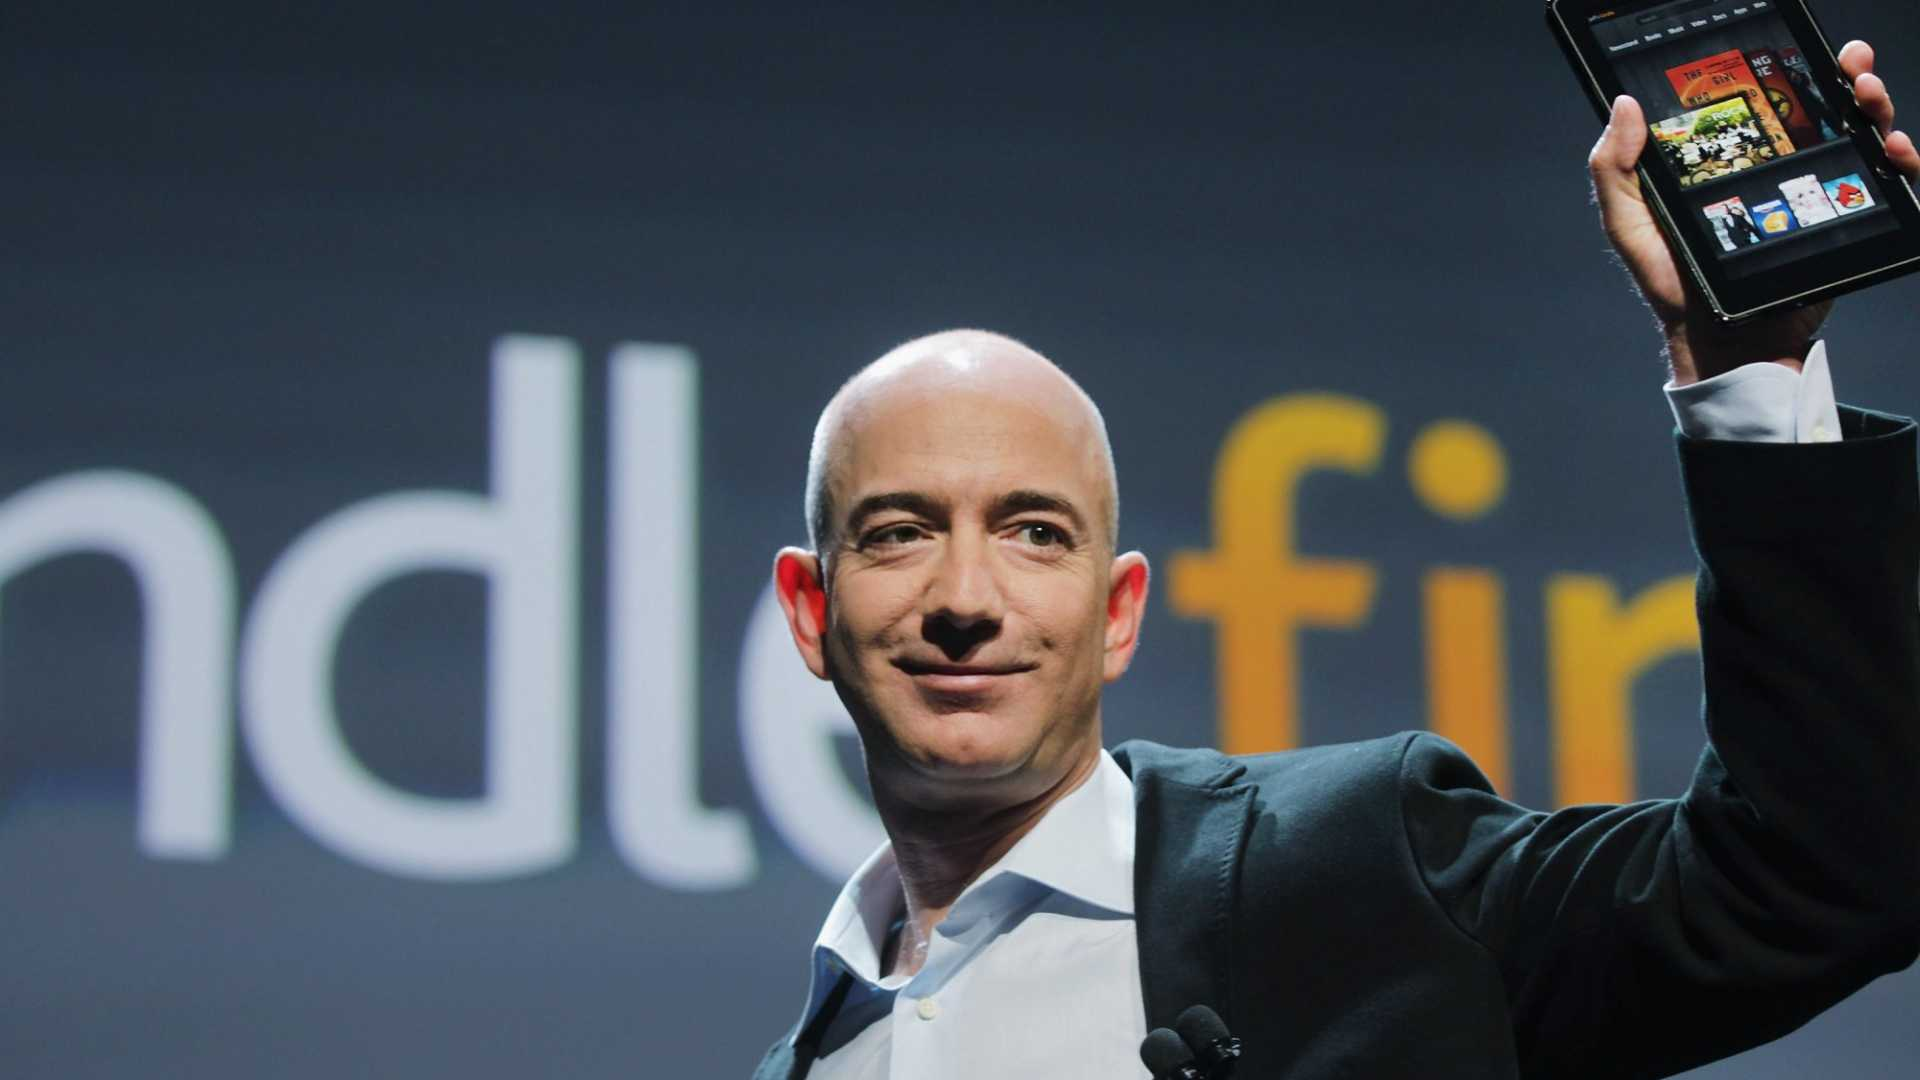 Amazon's Bookstores Aren't Making Any Money. Here's Why They're Still A Great Investment